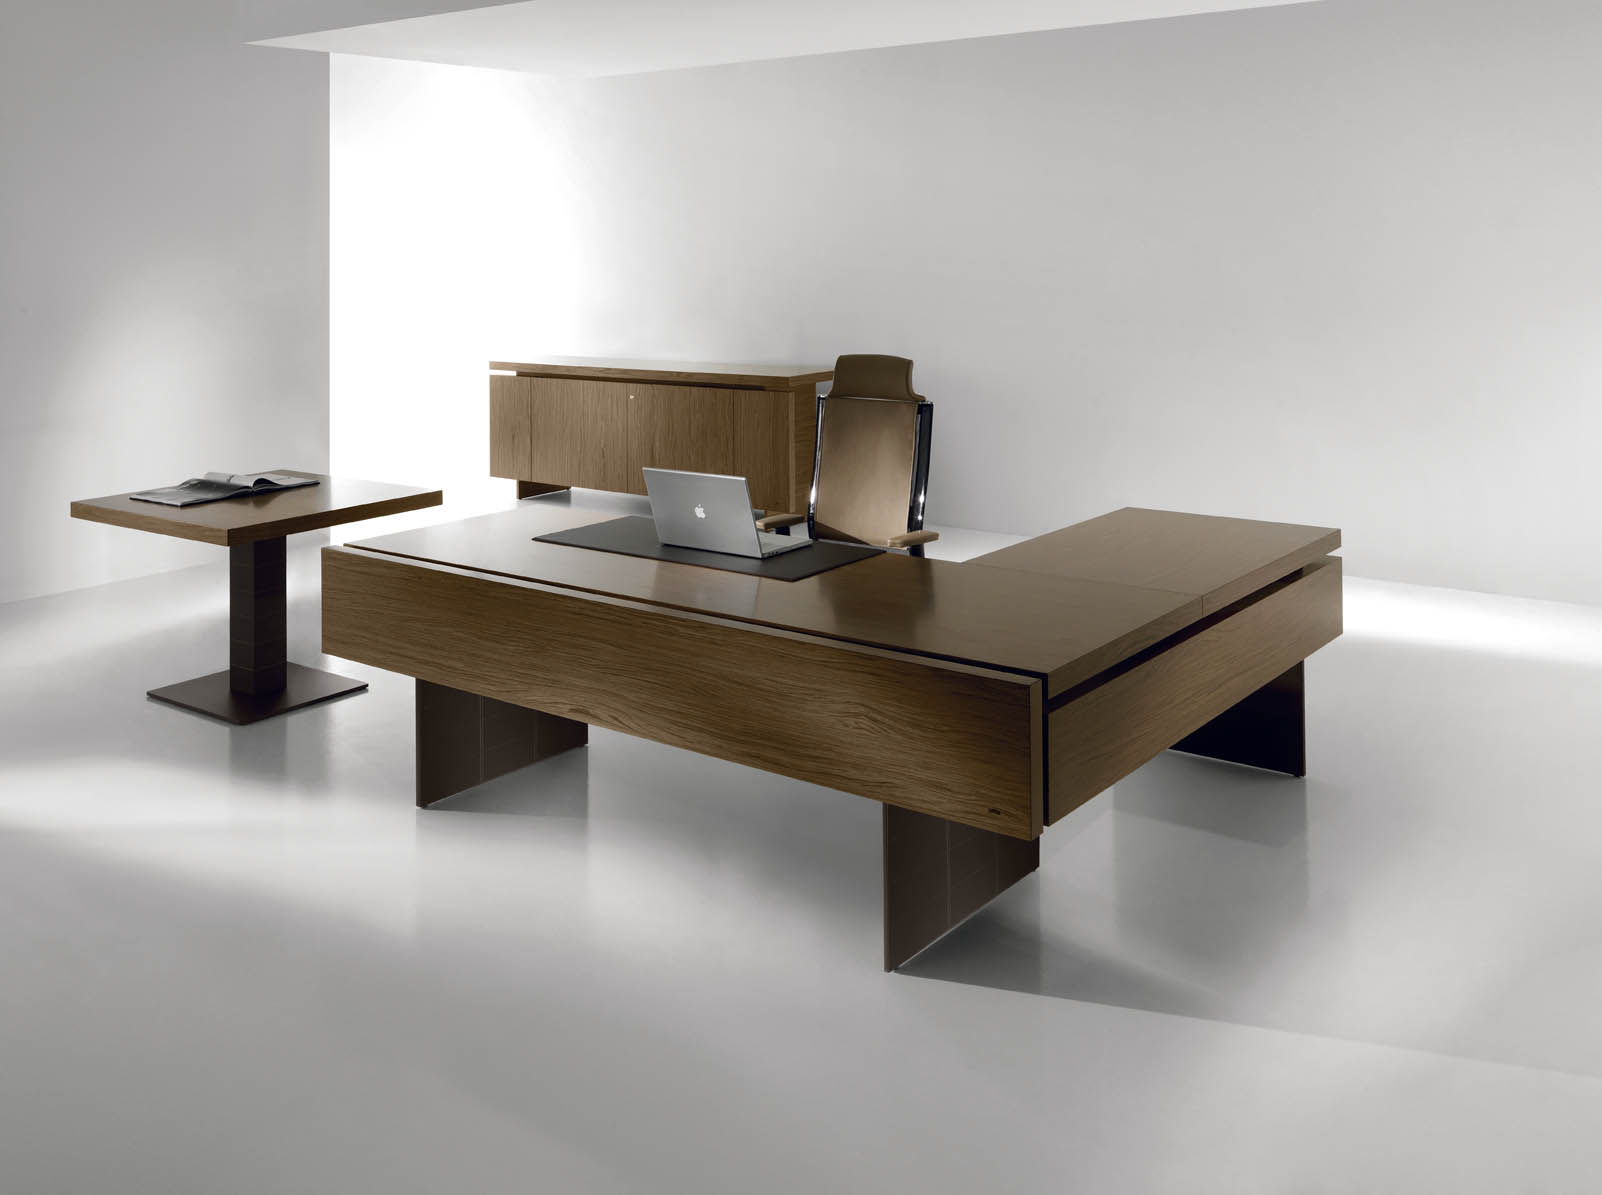 gamme the element fabricant de mobilier de bureau. Black Bedroom Furniture Sets. Home Design Ideas